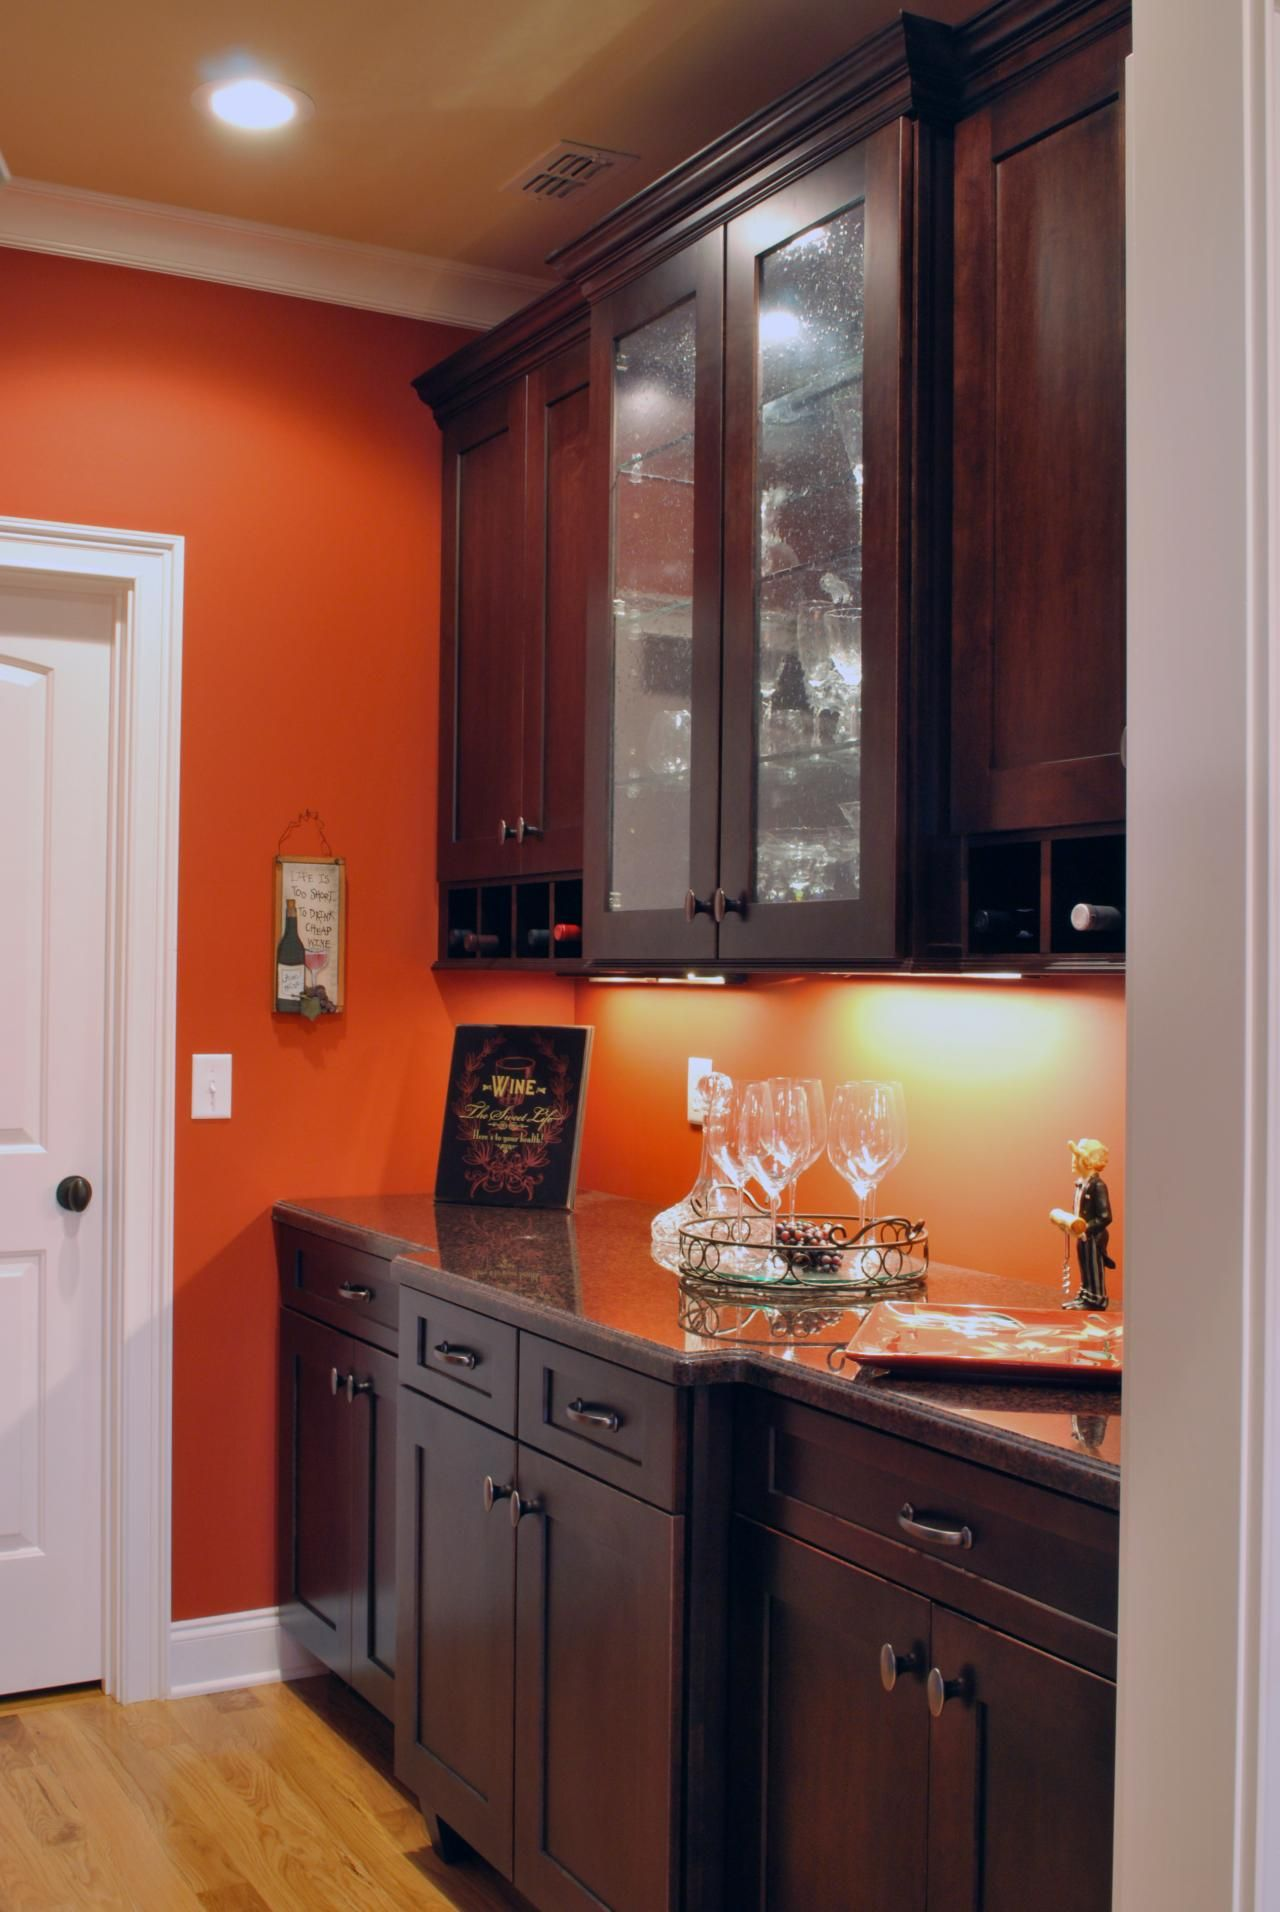 Blue Line Design Marsh Cabinetry Gallery Design Cabinet Cabinetry